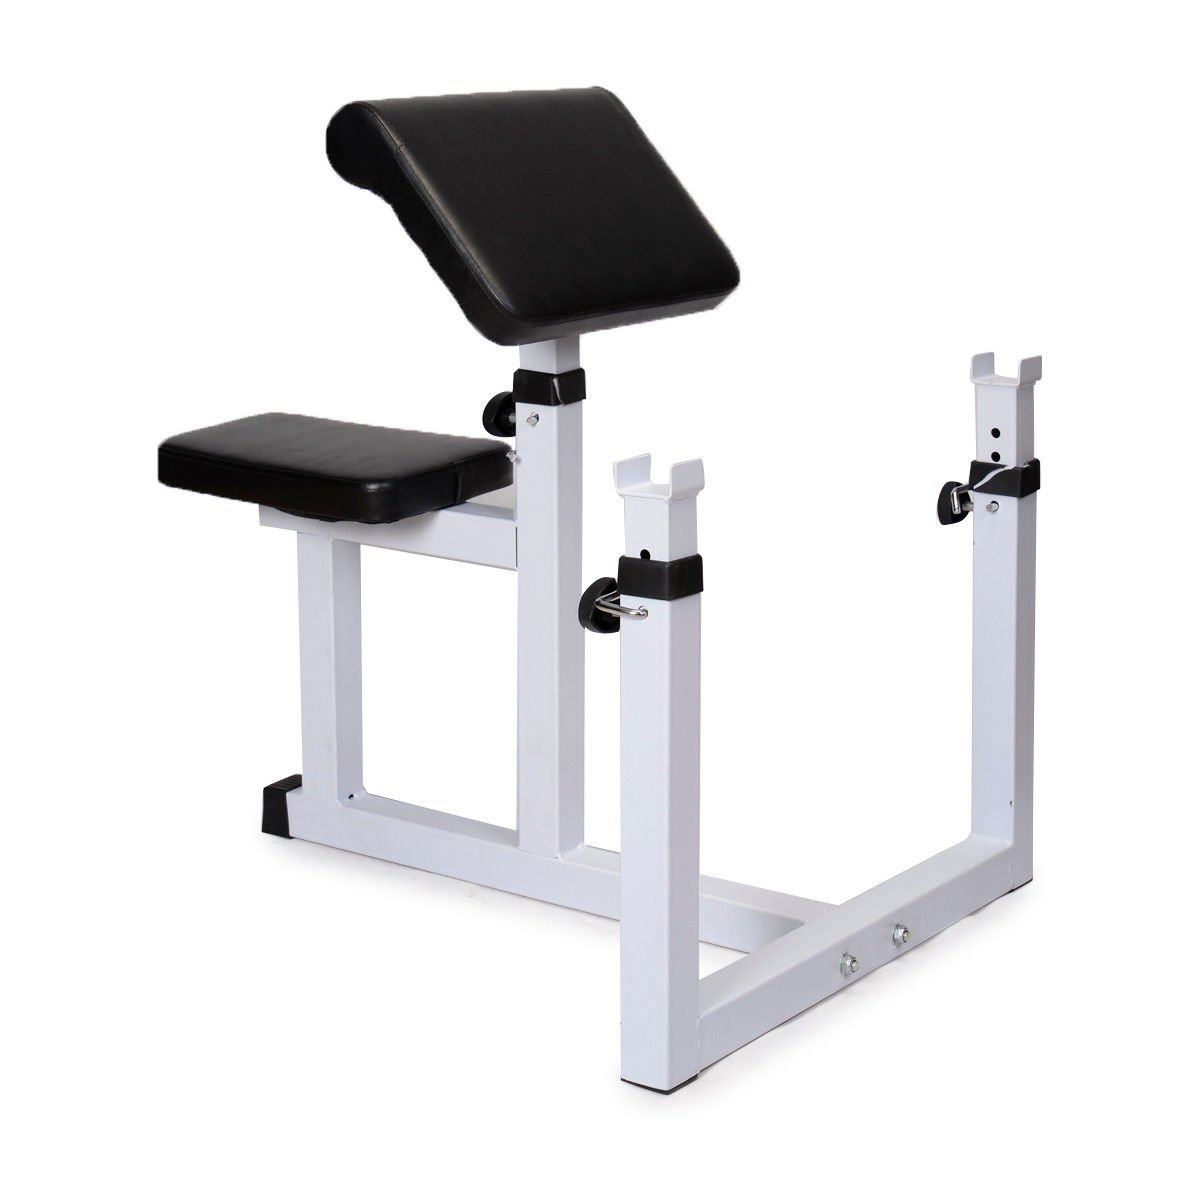 com developer weight bench body attachment benches for with curl leg olympic b workout lift sale champ extension piece amazon